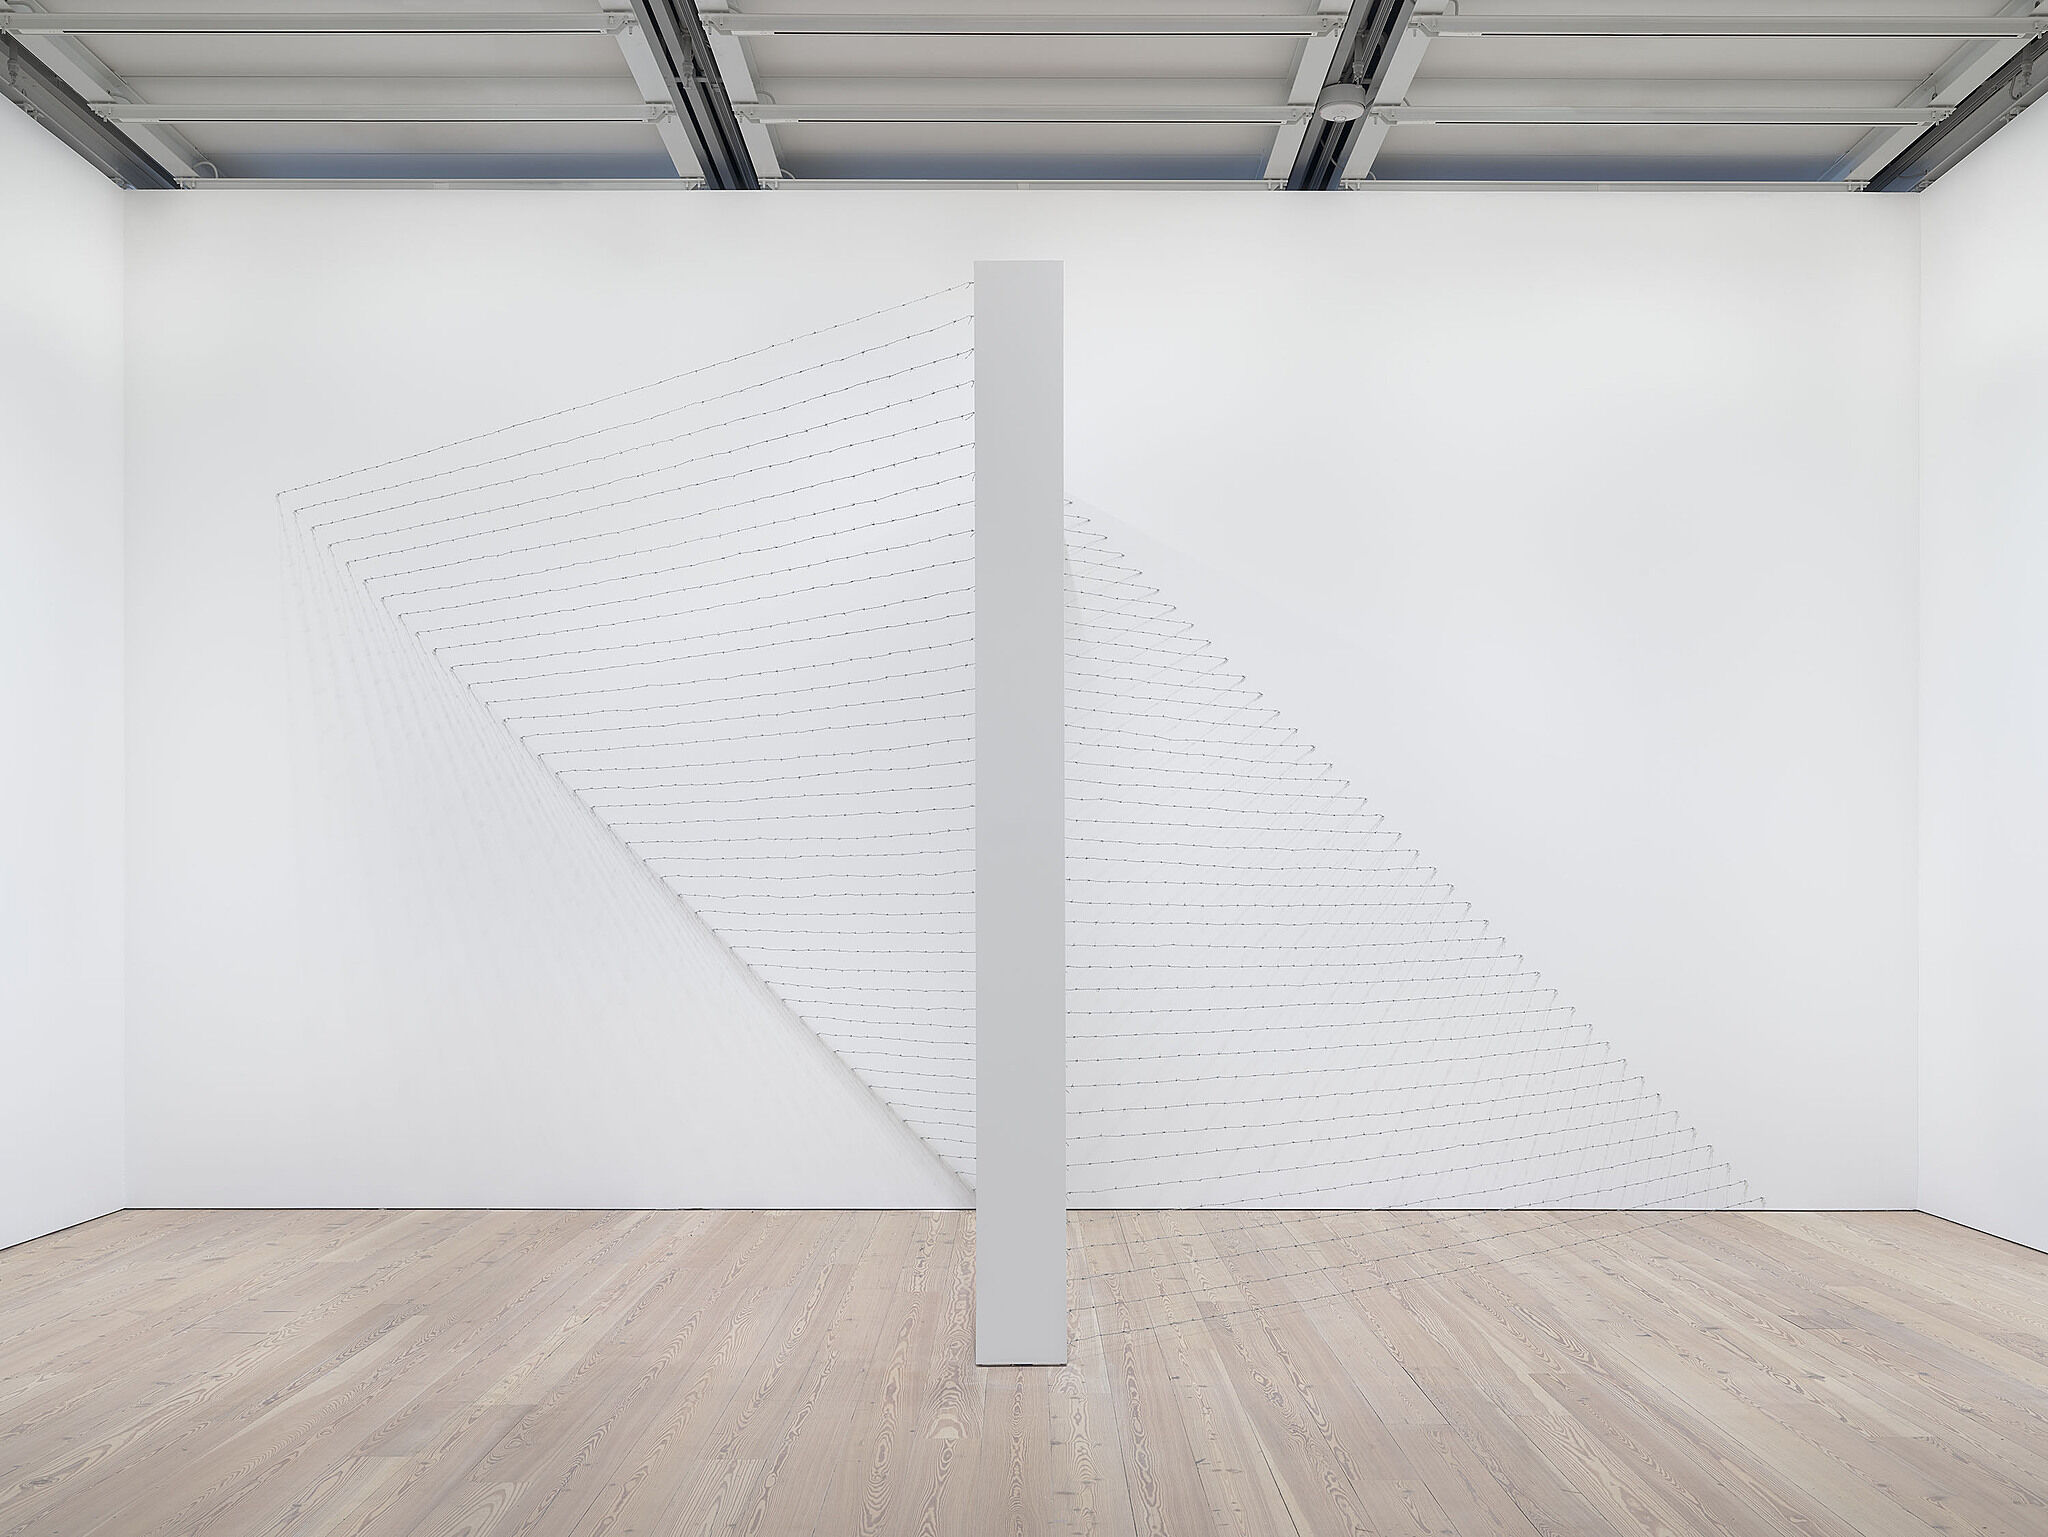 Barbed wire spread across a white gallery, creating two pyramid shapes.